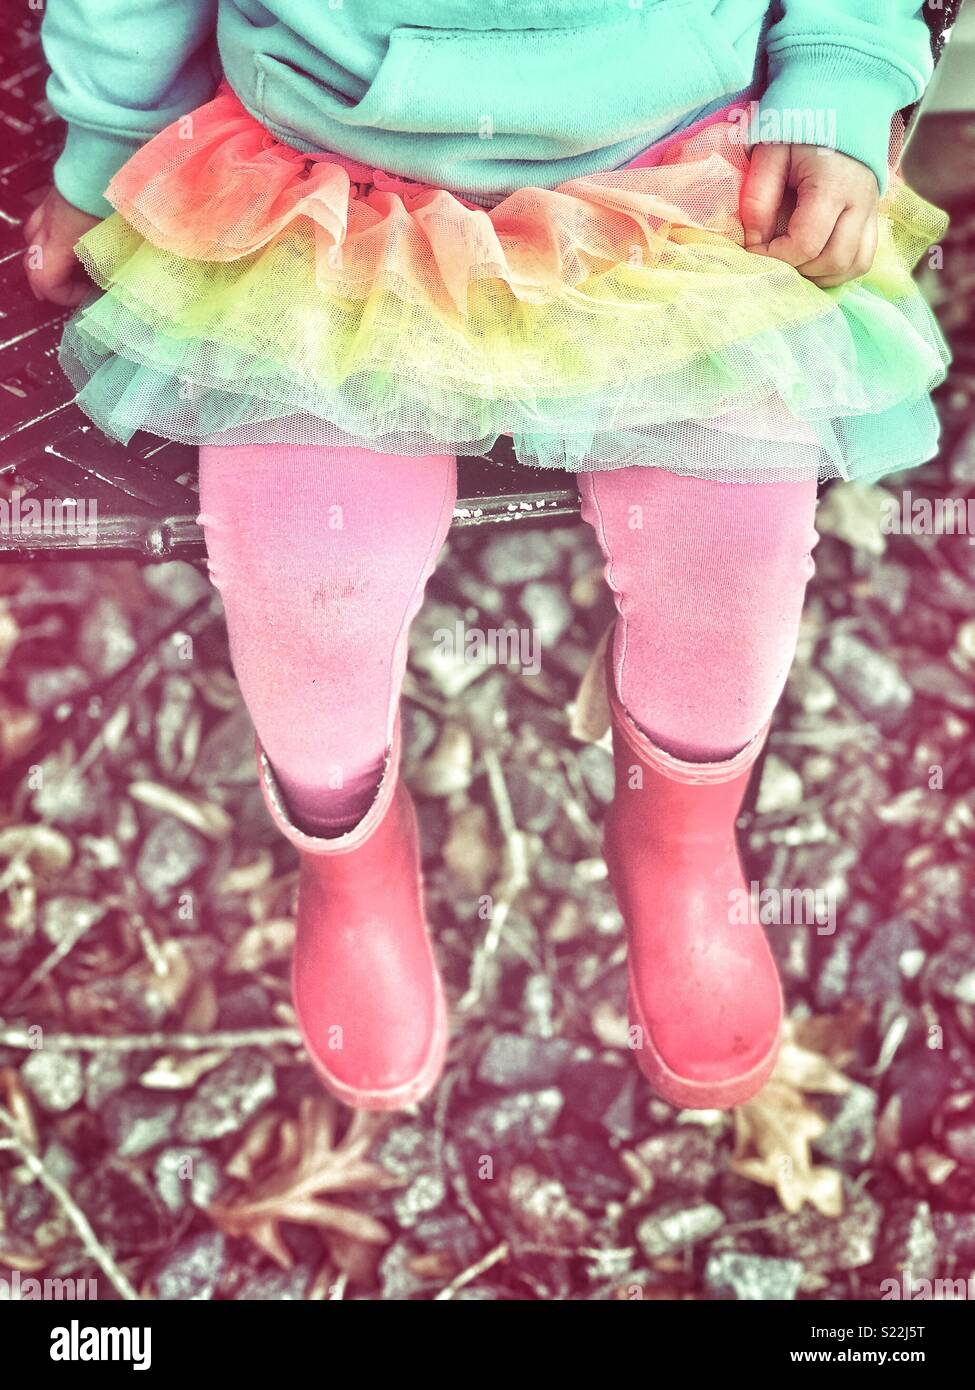 Little girl sitting on a chair outside with a tutu, pink tights and red rain boots - Stock Image